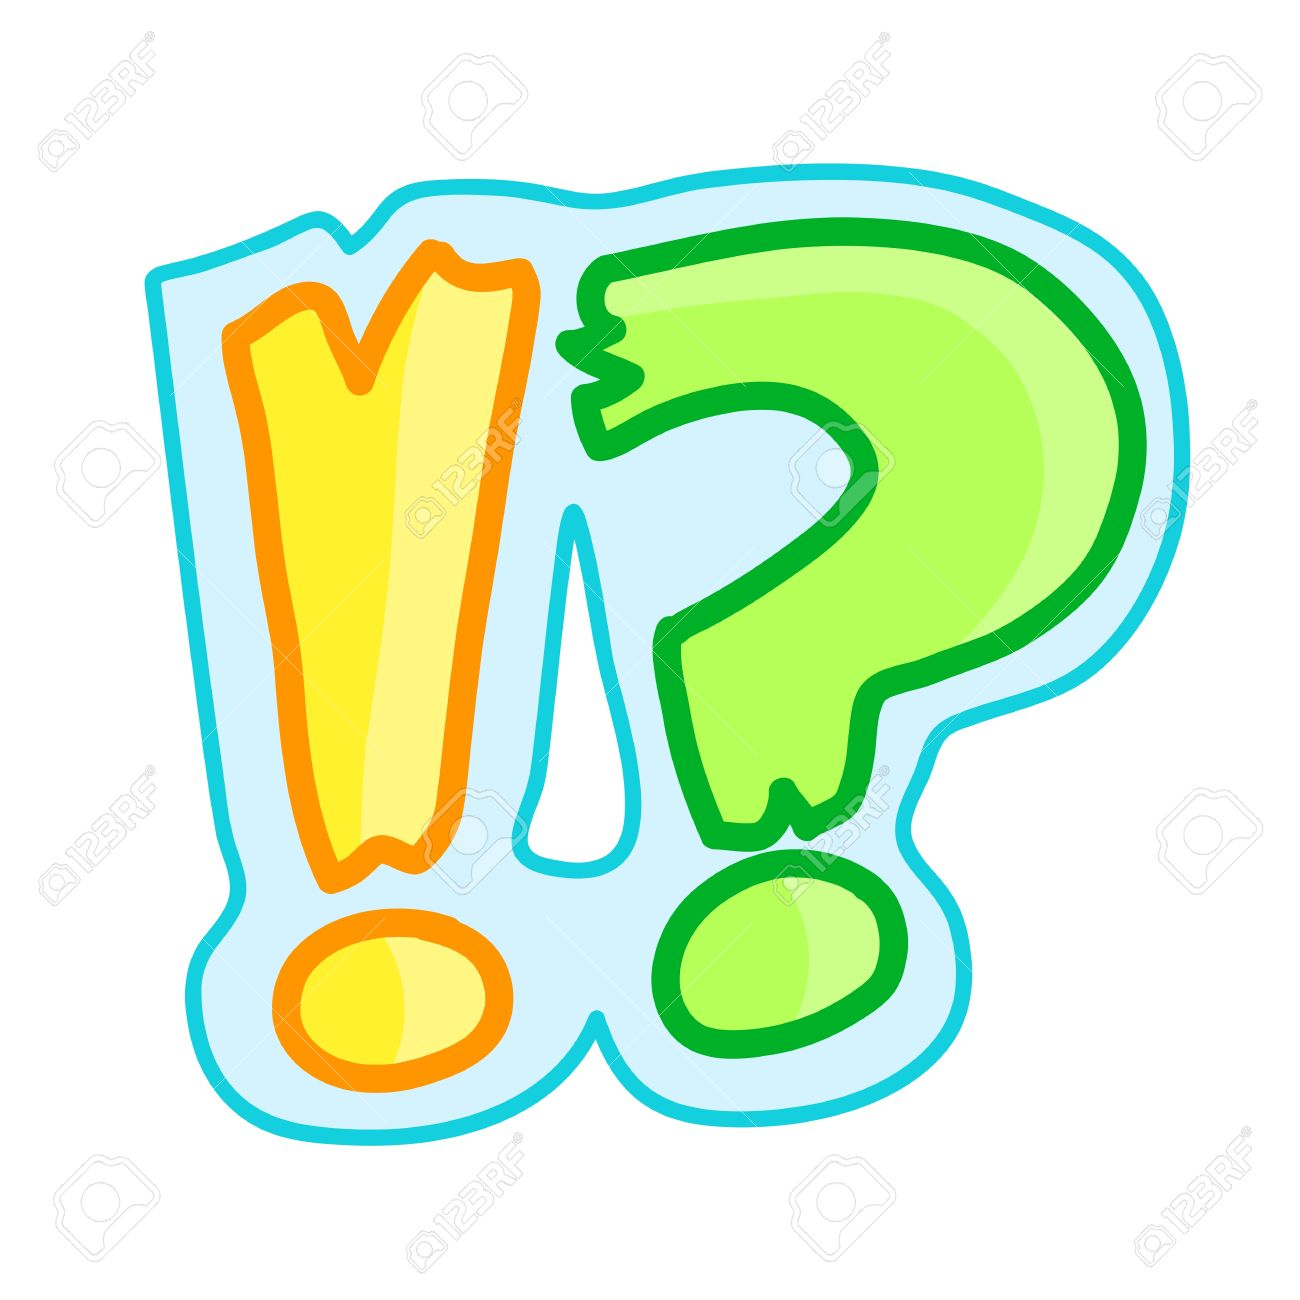 exclamation and question mark cute cartoon royalty free cliparts